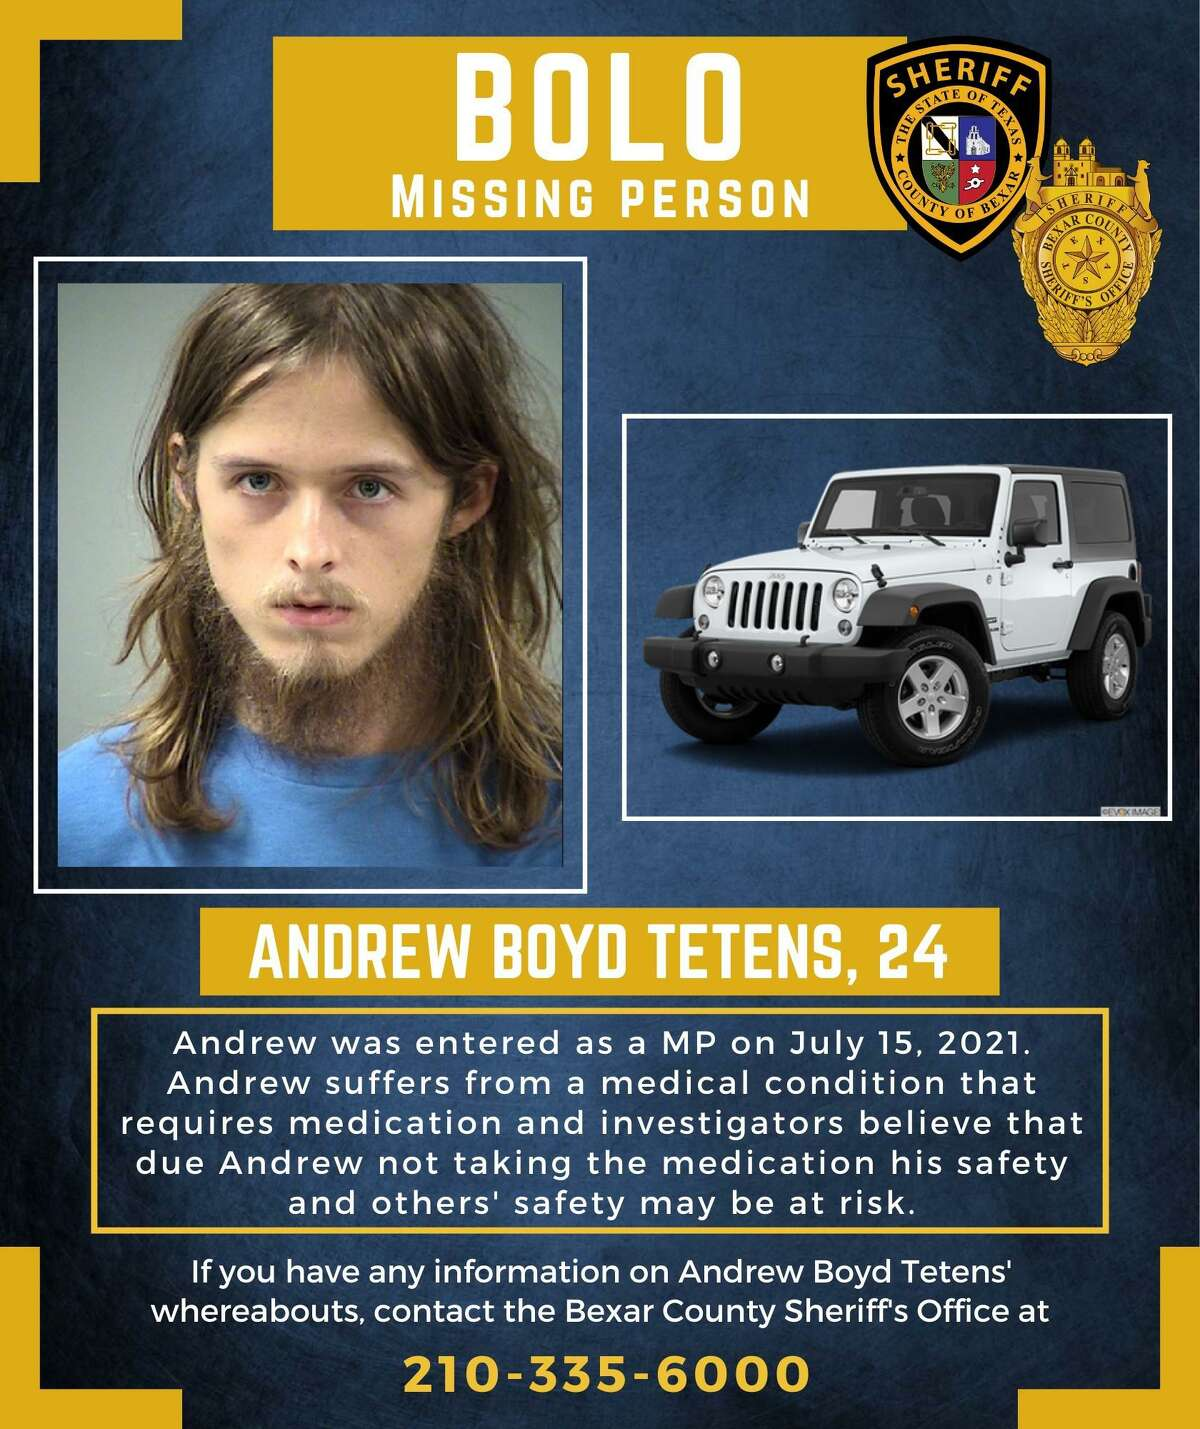 Andrew Boyd Tetens has been declared a missing person. Police believe Tetens lived at a home where a woman was found dead.